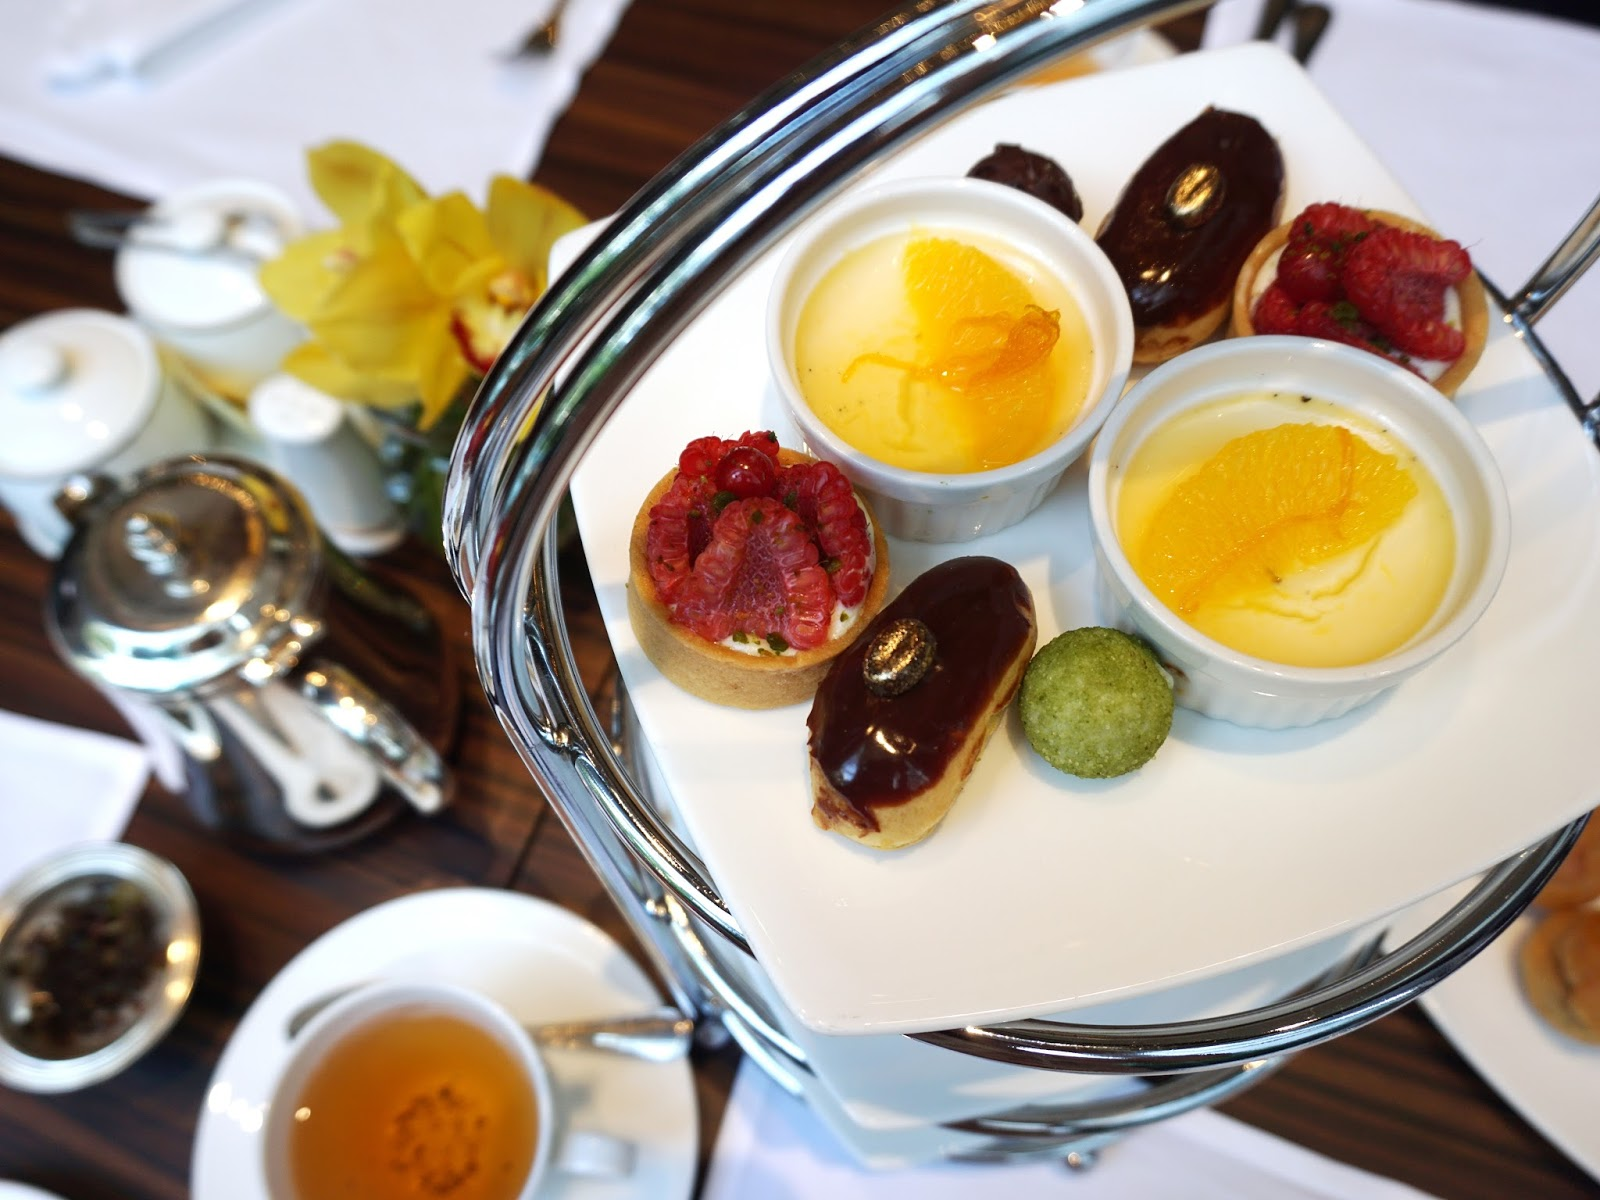 Pinkypiggu the grand astor afternoon tea at brasserie les saveurs the grand astor afternoon tea at brasserie les saveurs the st regis singapore forumfinder Image collections